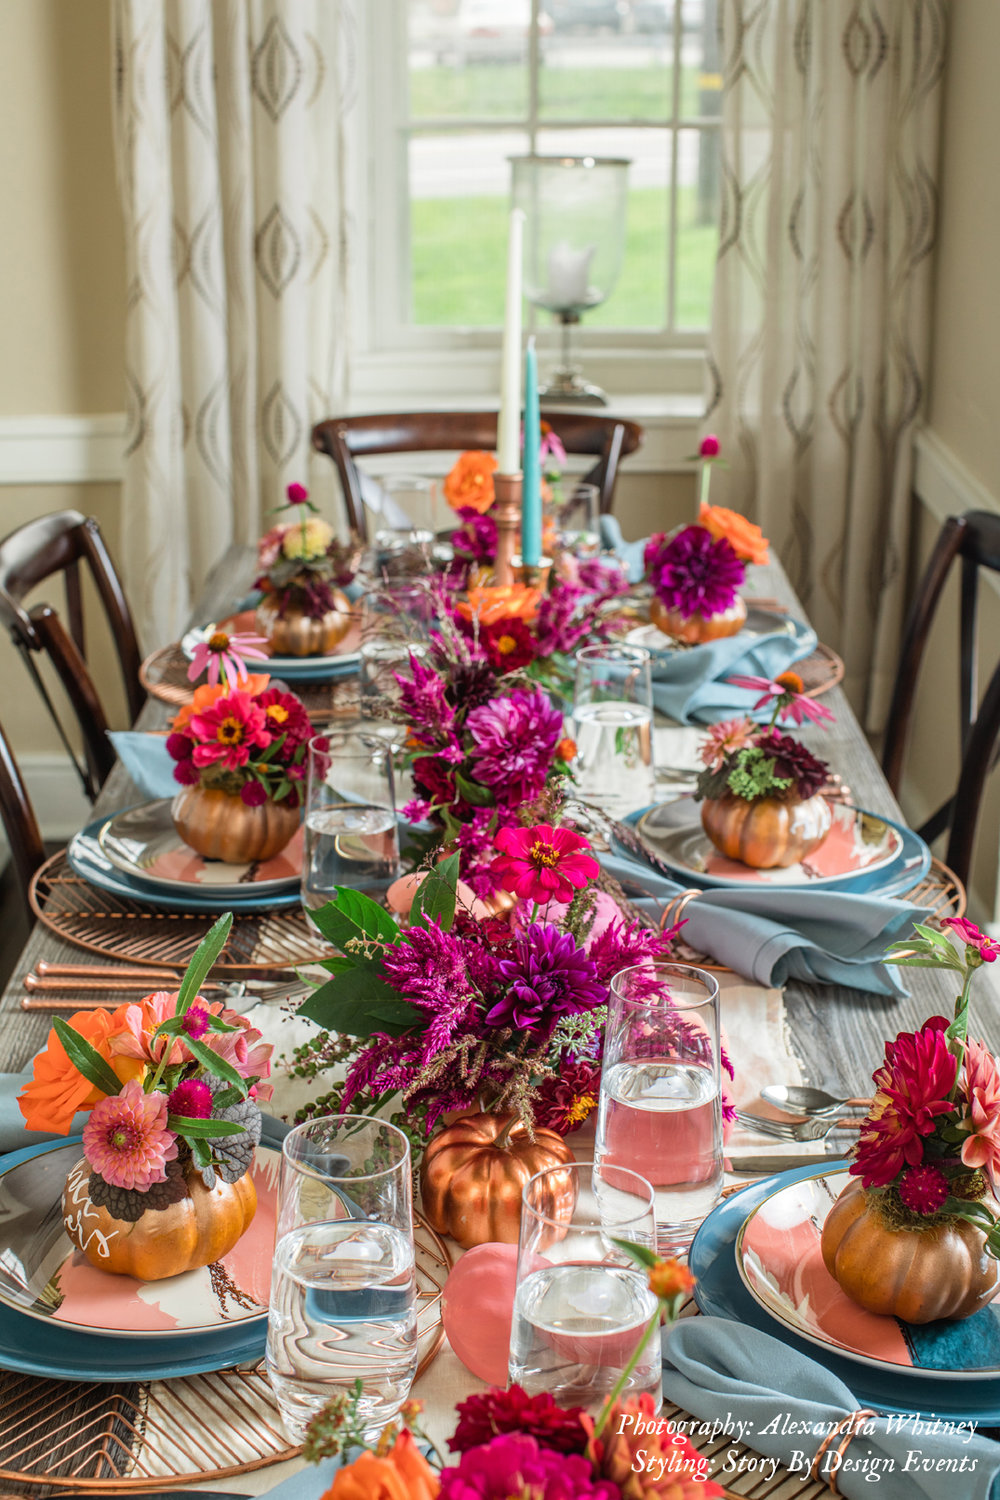 TableScapes_82817FriendsgivingLVS077.jpg